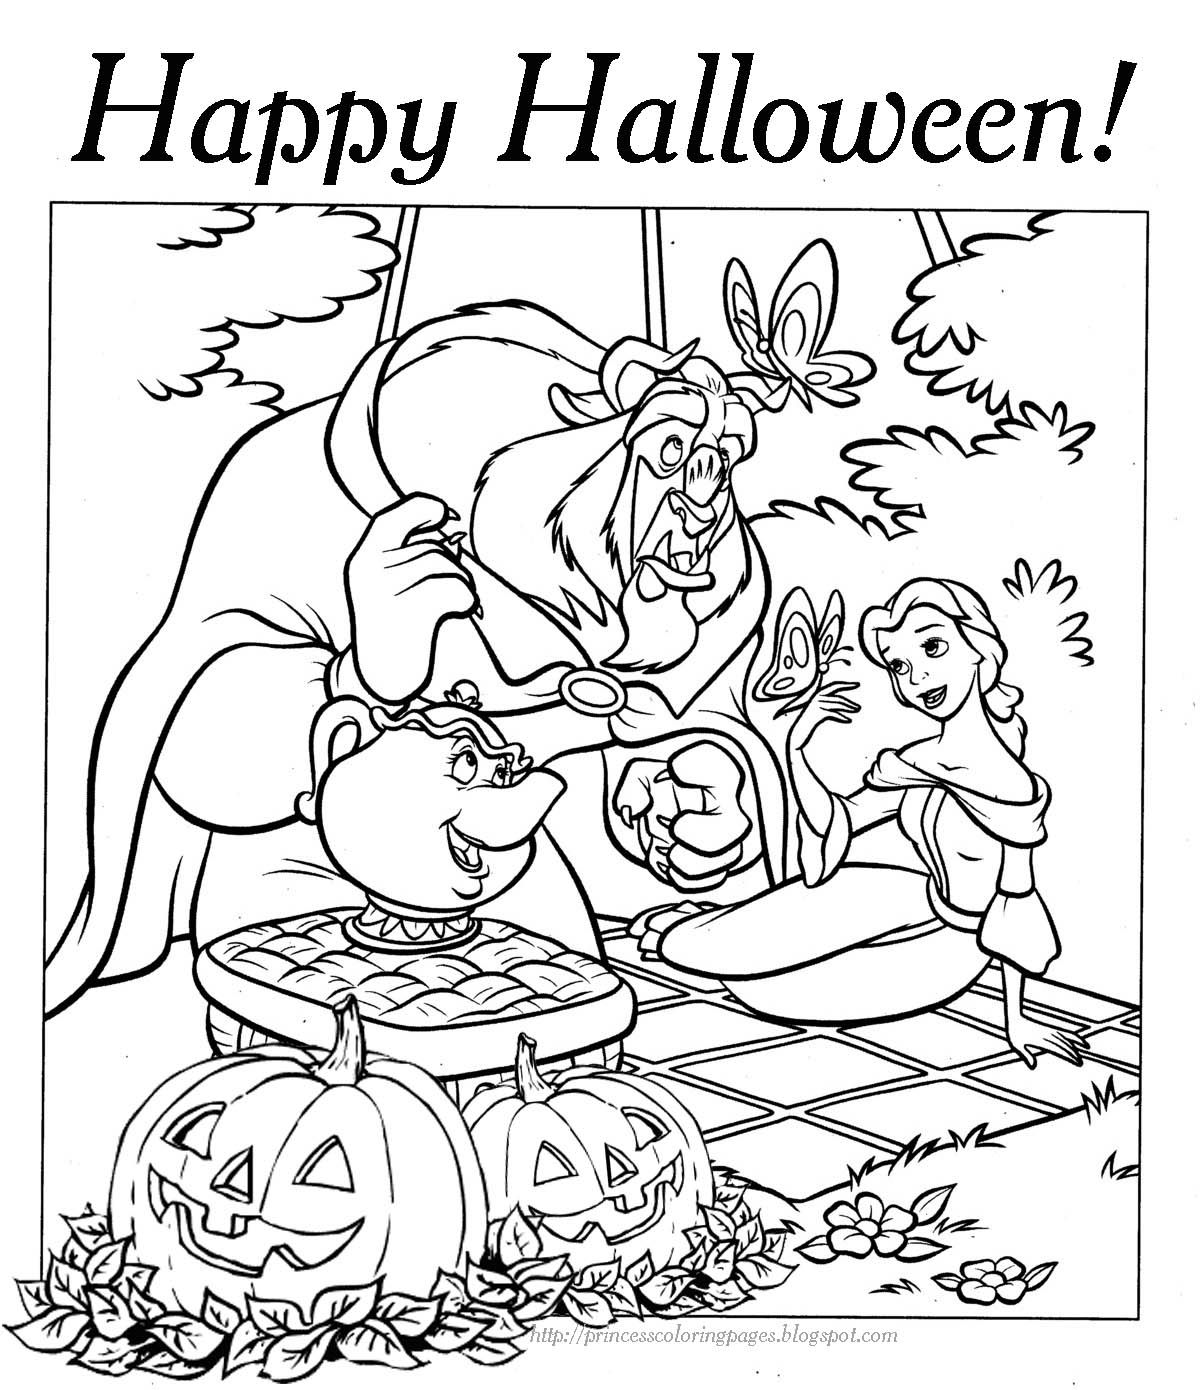 6 Pics Of Disney Halloween Coloring Pages Hard - Free ...